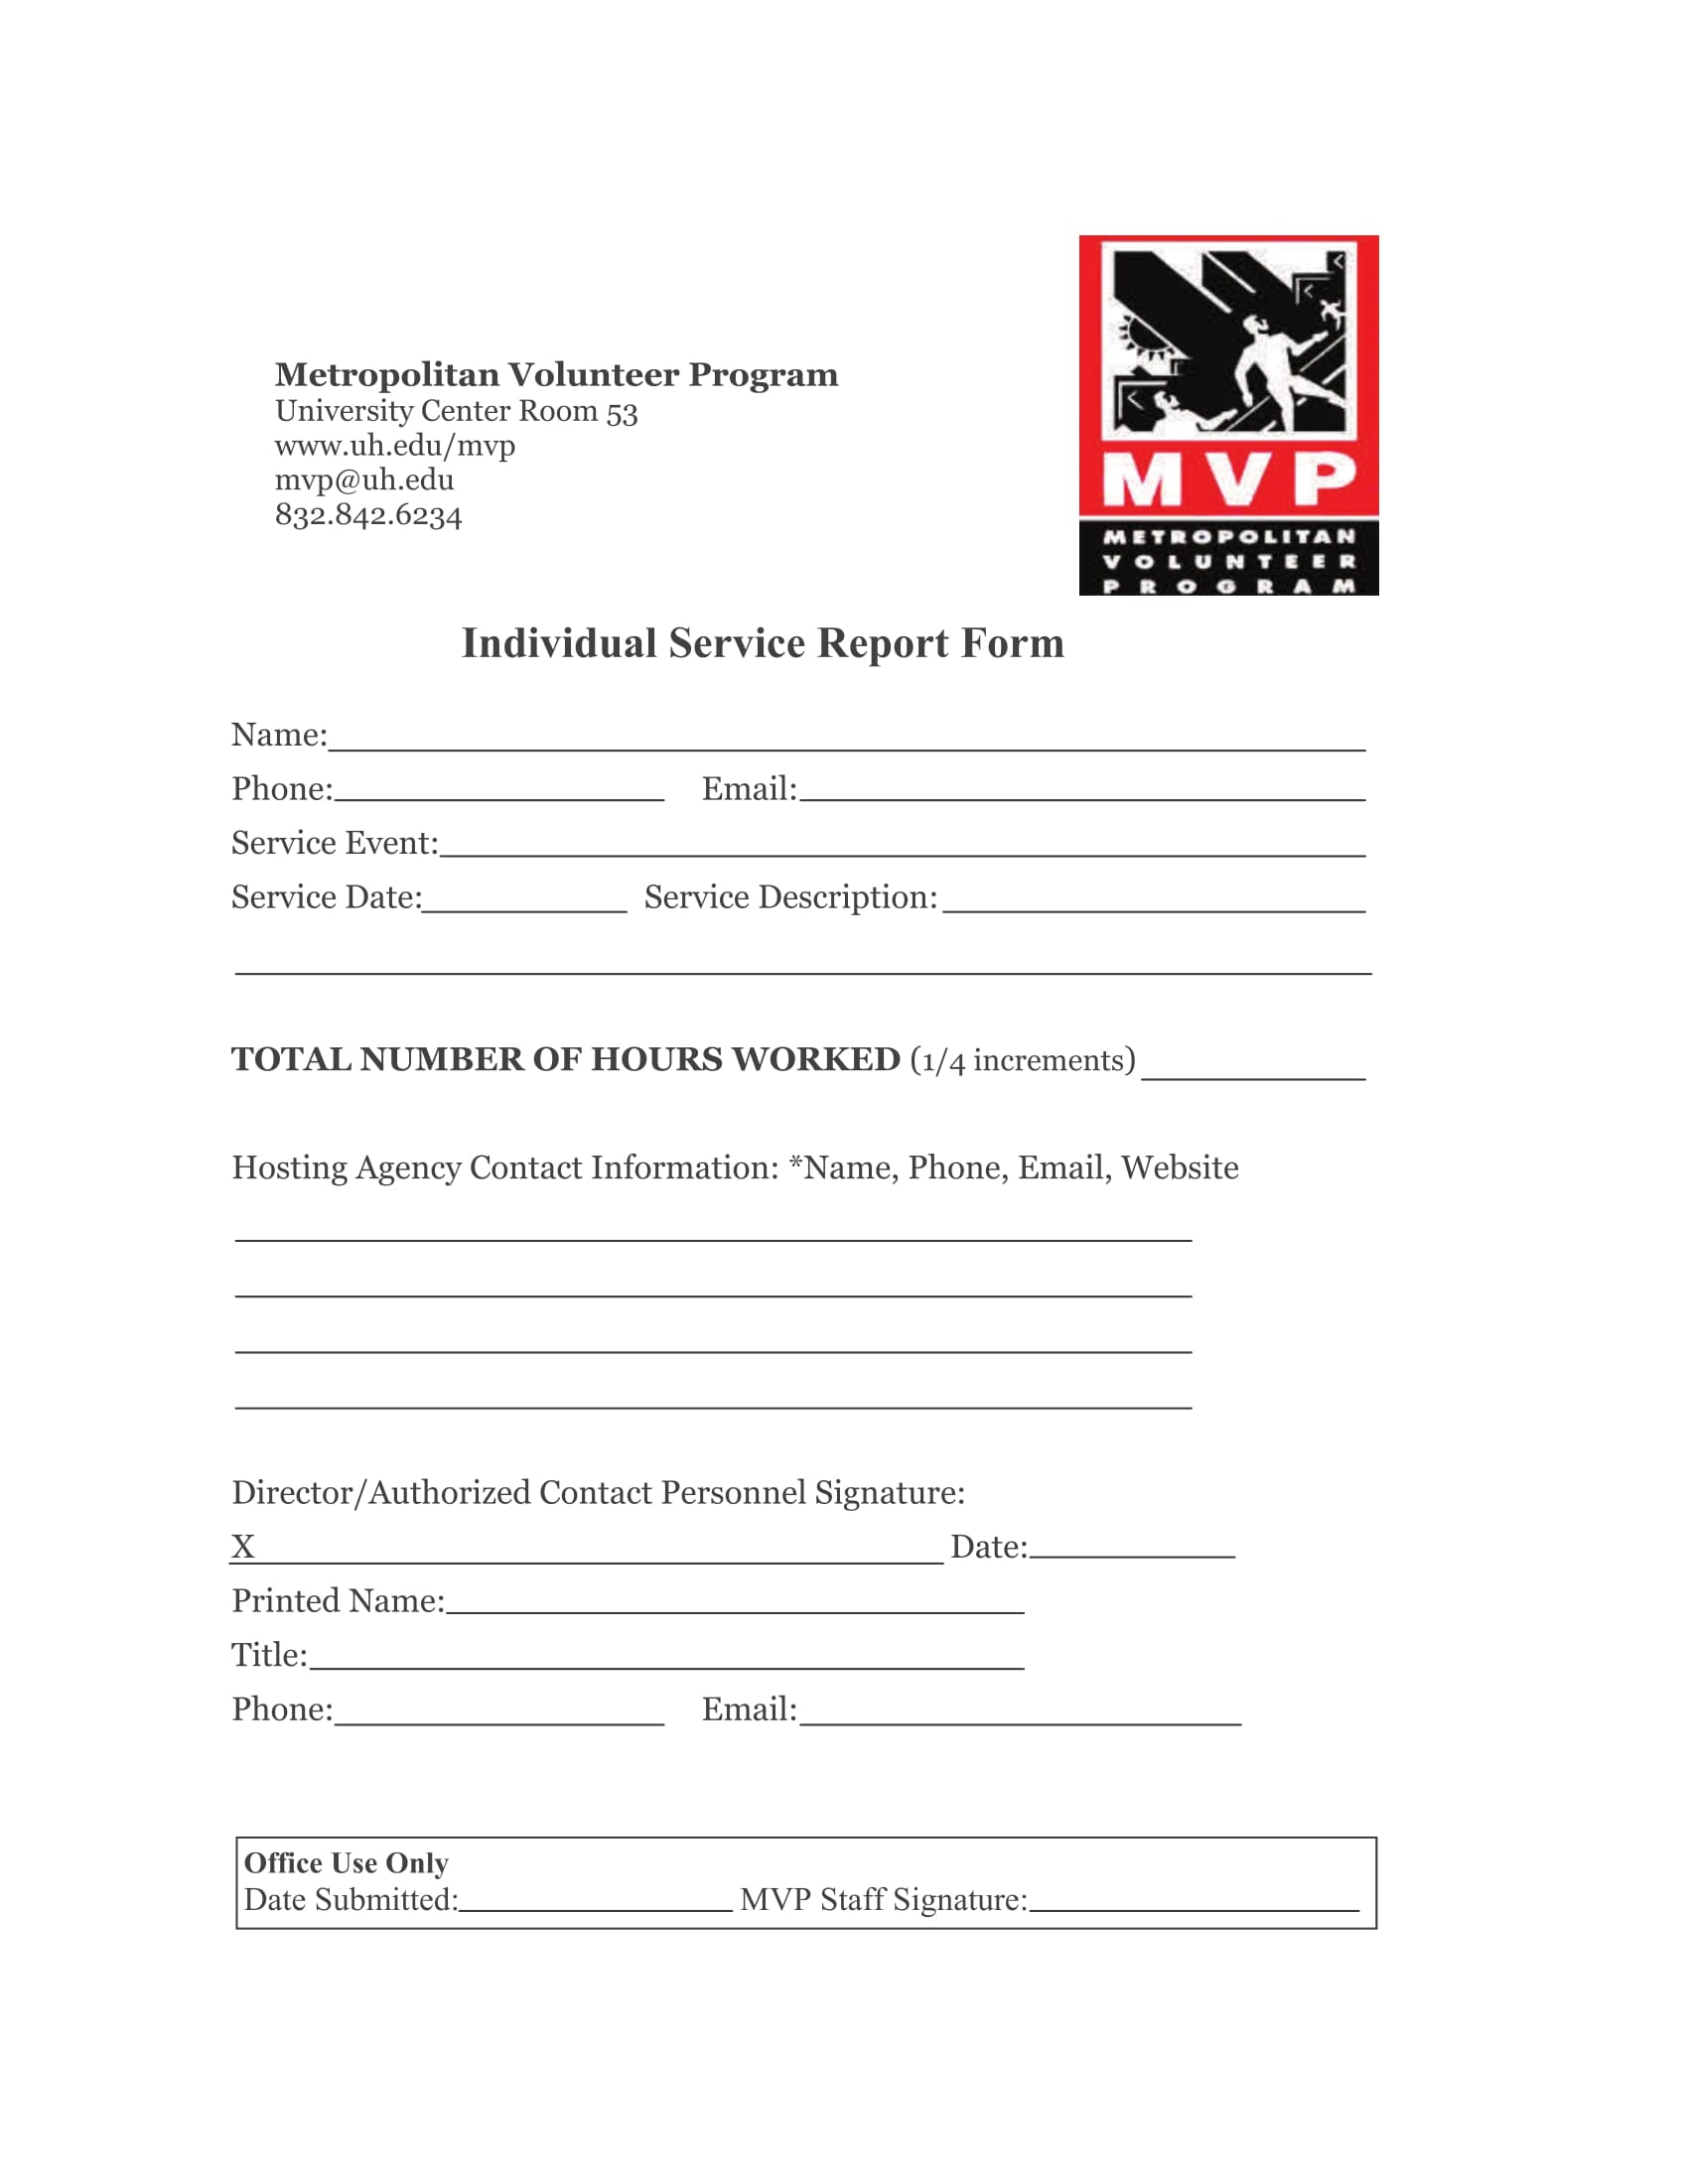 individual or volunteer service report form 1